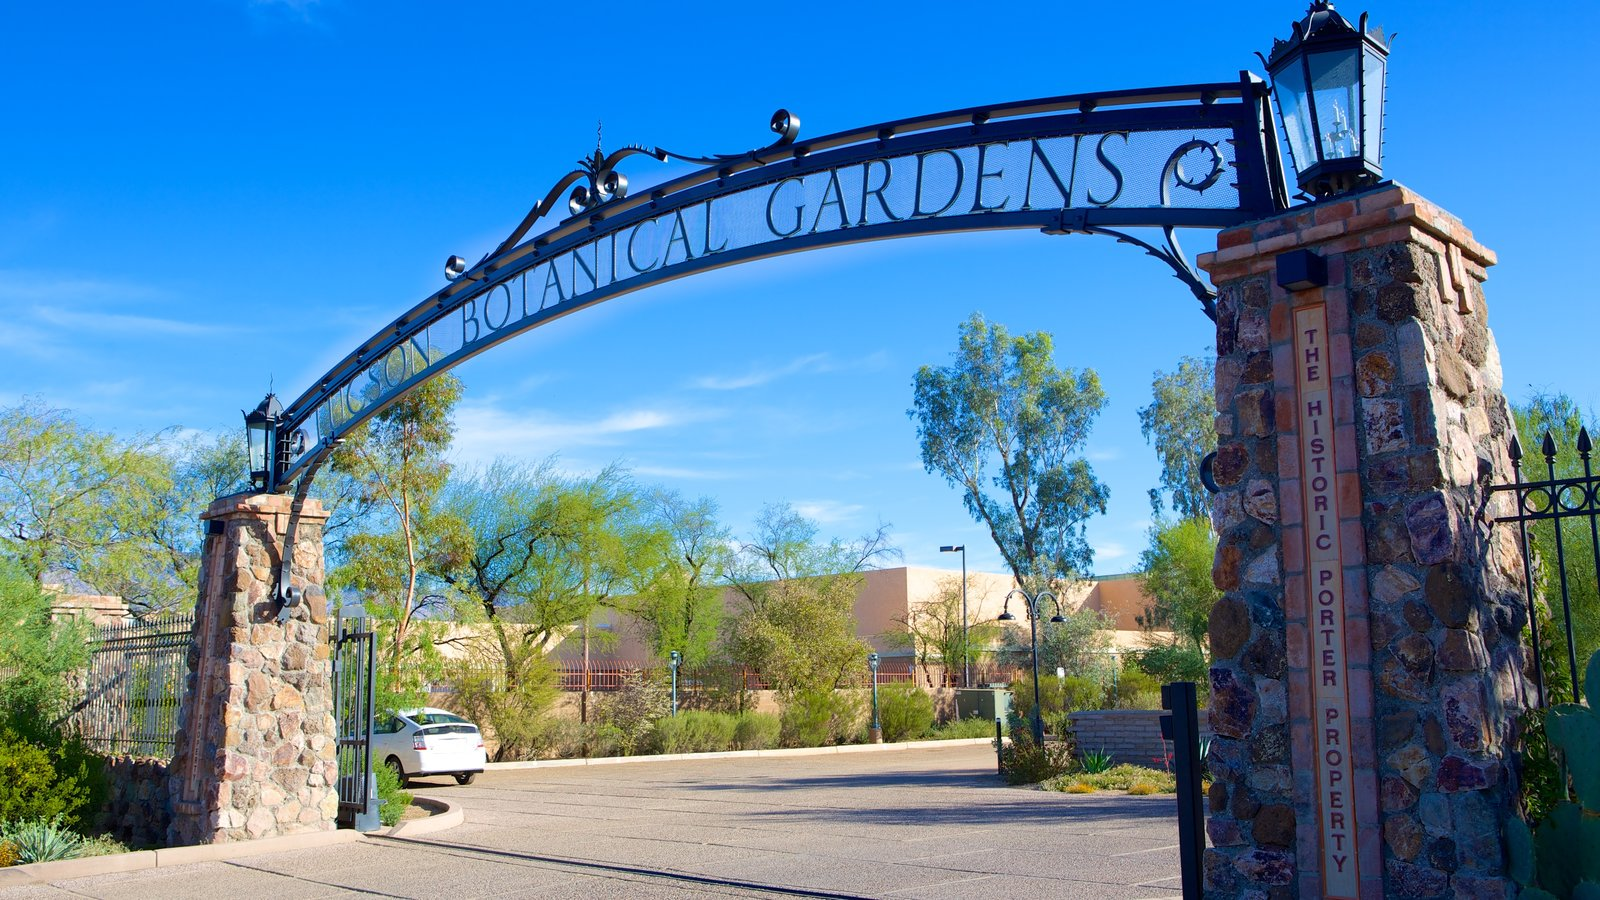 Tucson Botanical Gardens Featuring A Garden And Signage